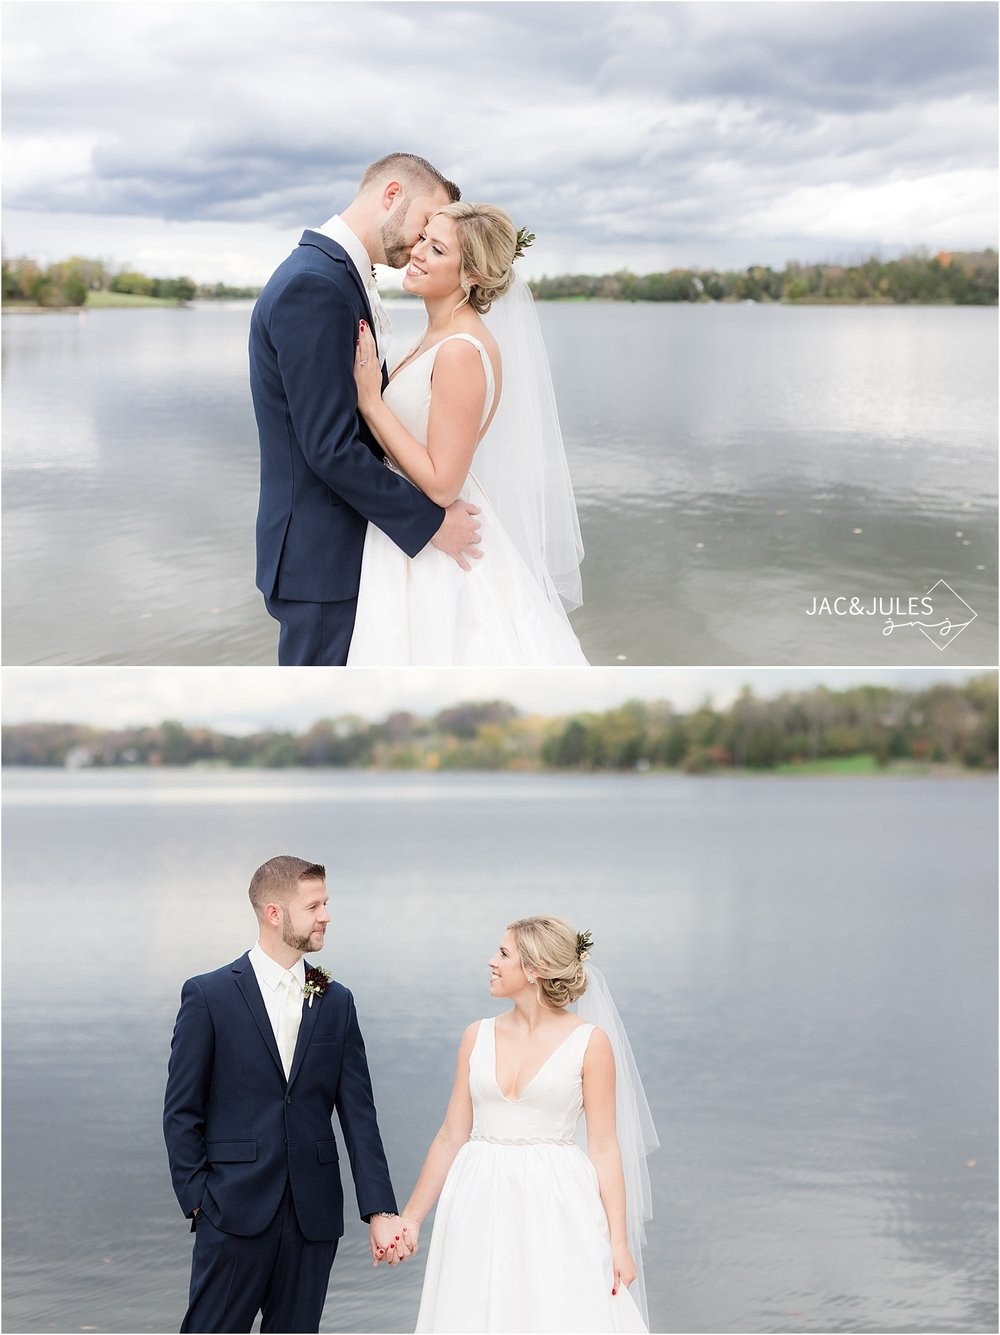 Bride and Groom pose for photos lakeside in upstate NY